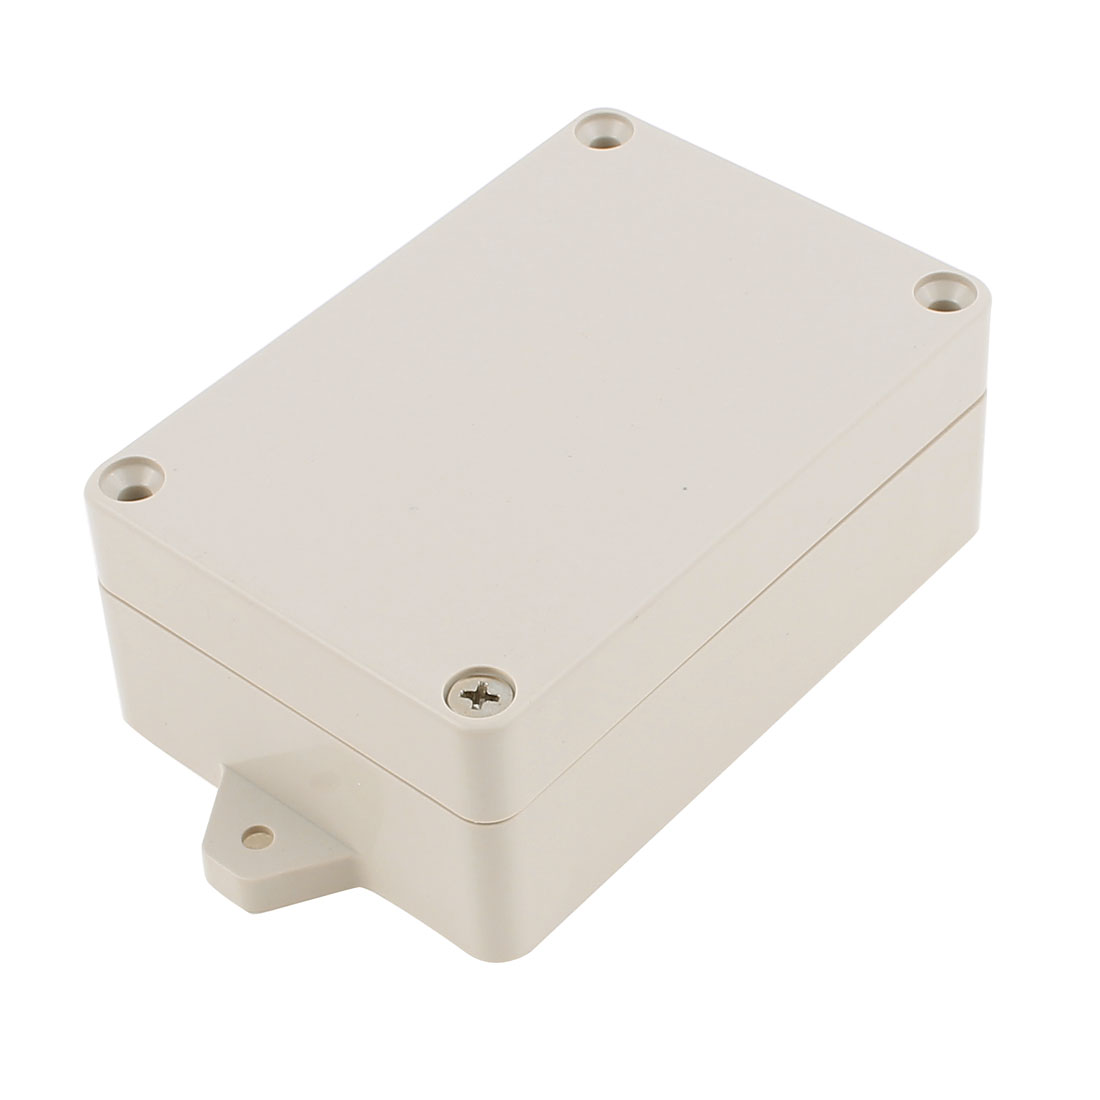 100 x 68 x 40mm Dustproof IP65 Junction Box Terminal Connecting Box Enclosure